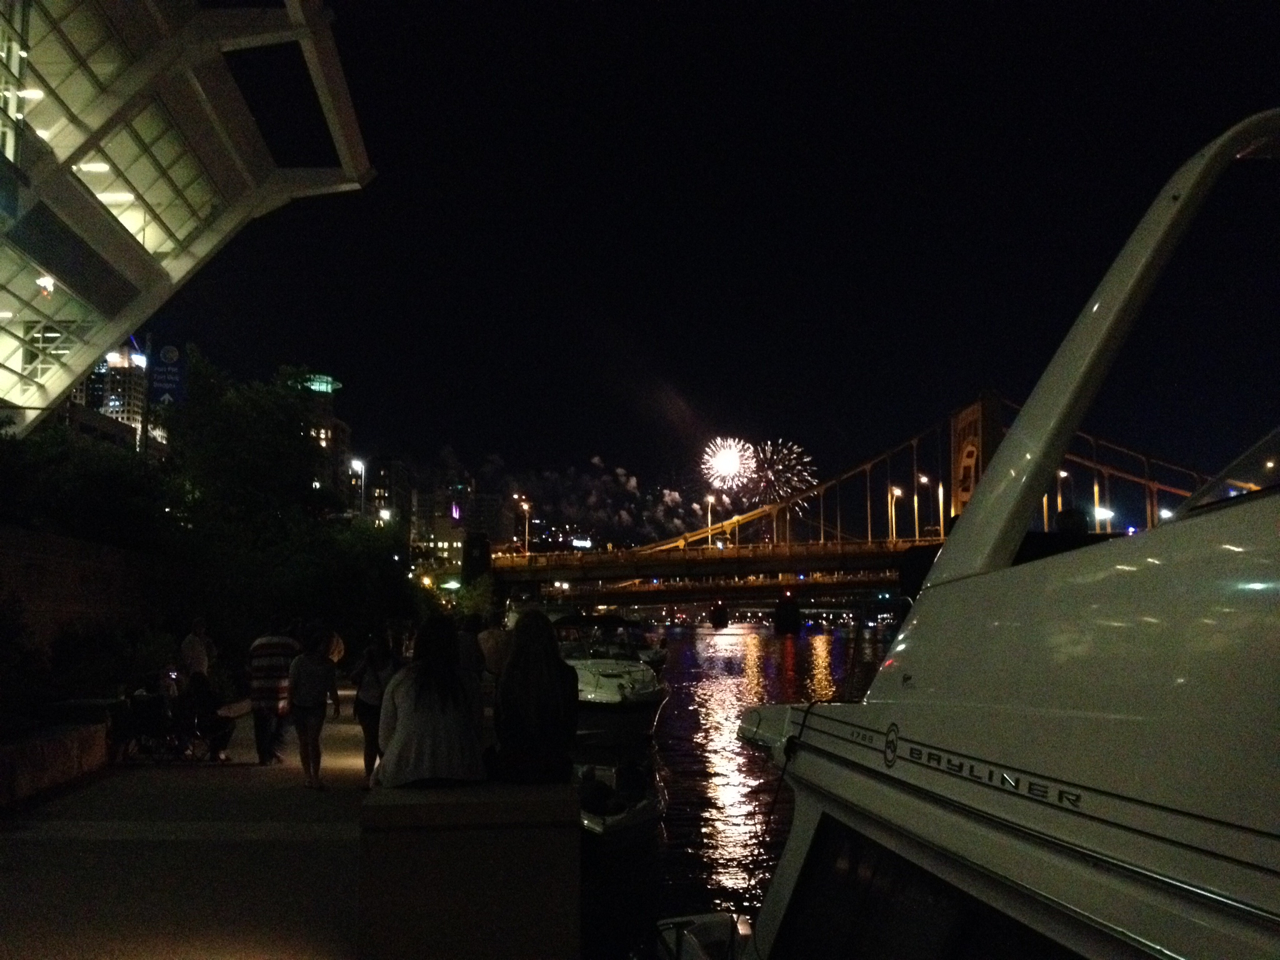 Fireworks over Confluence Point Park, 4th of July, as seen from the docks by the DLLCC on the Allegheny river.